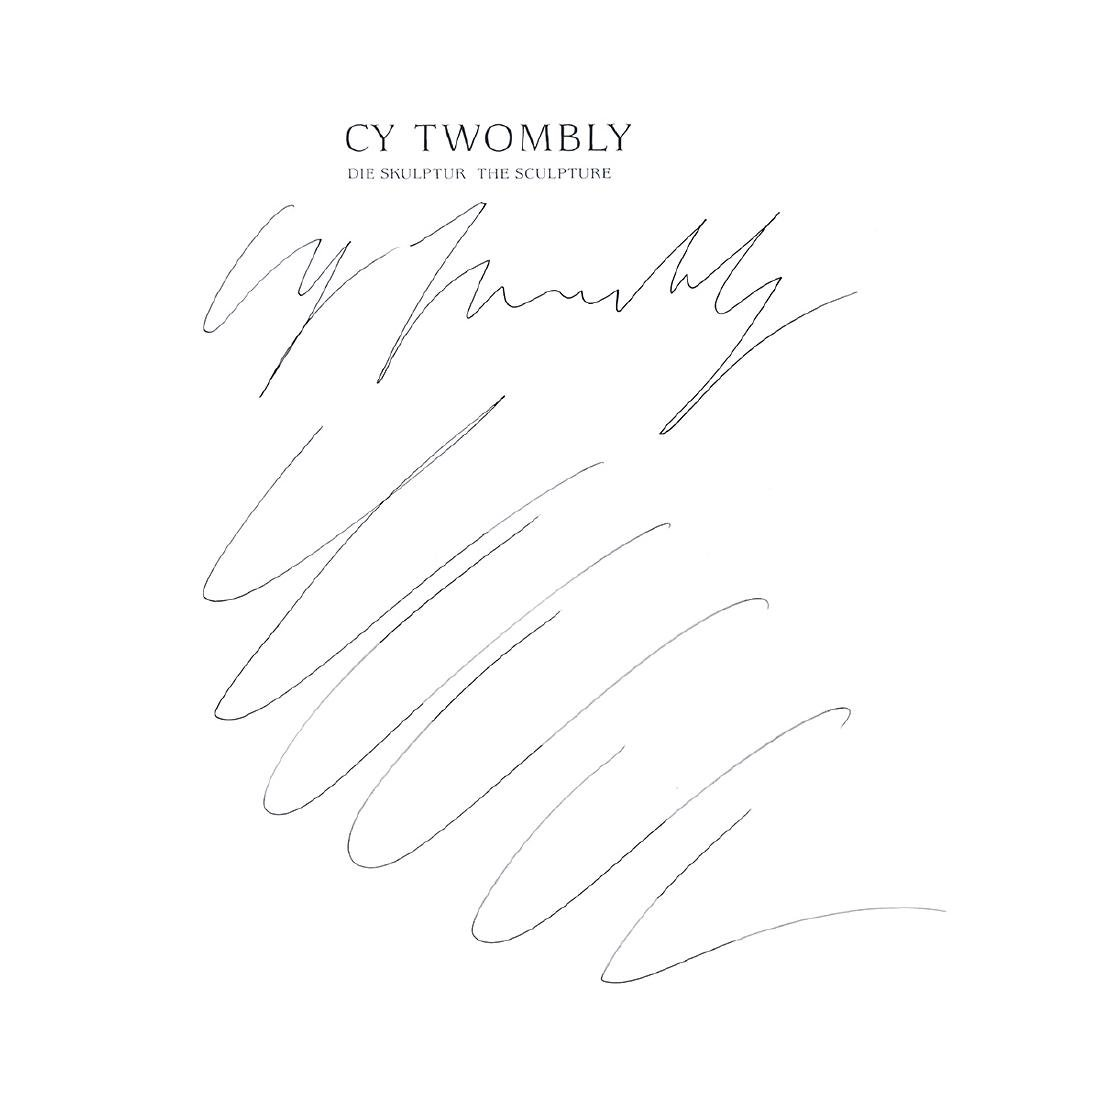 """Cy Twombly """"The Sculpture"""" signed book page"""